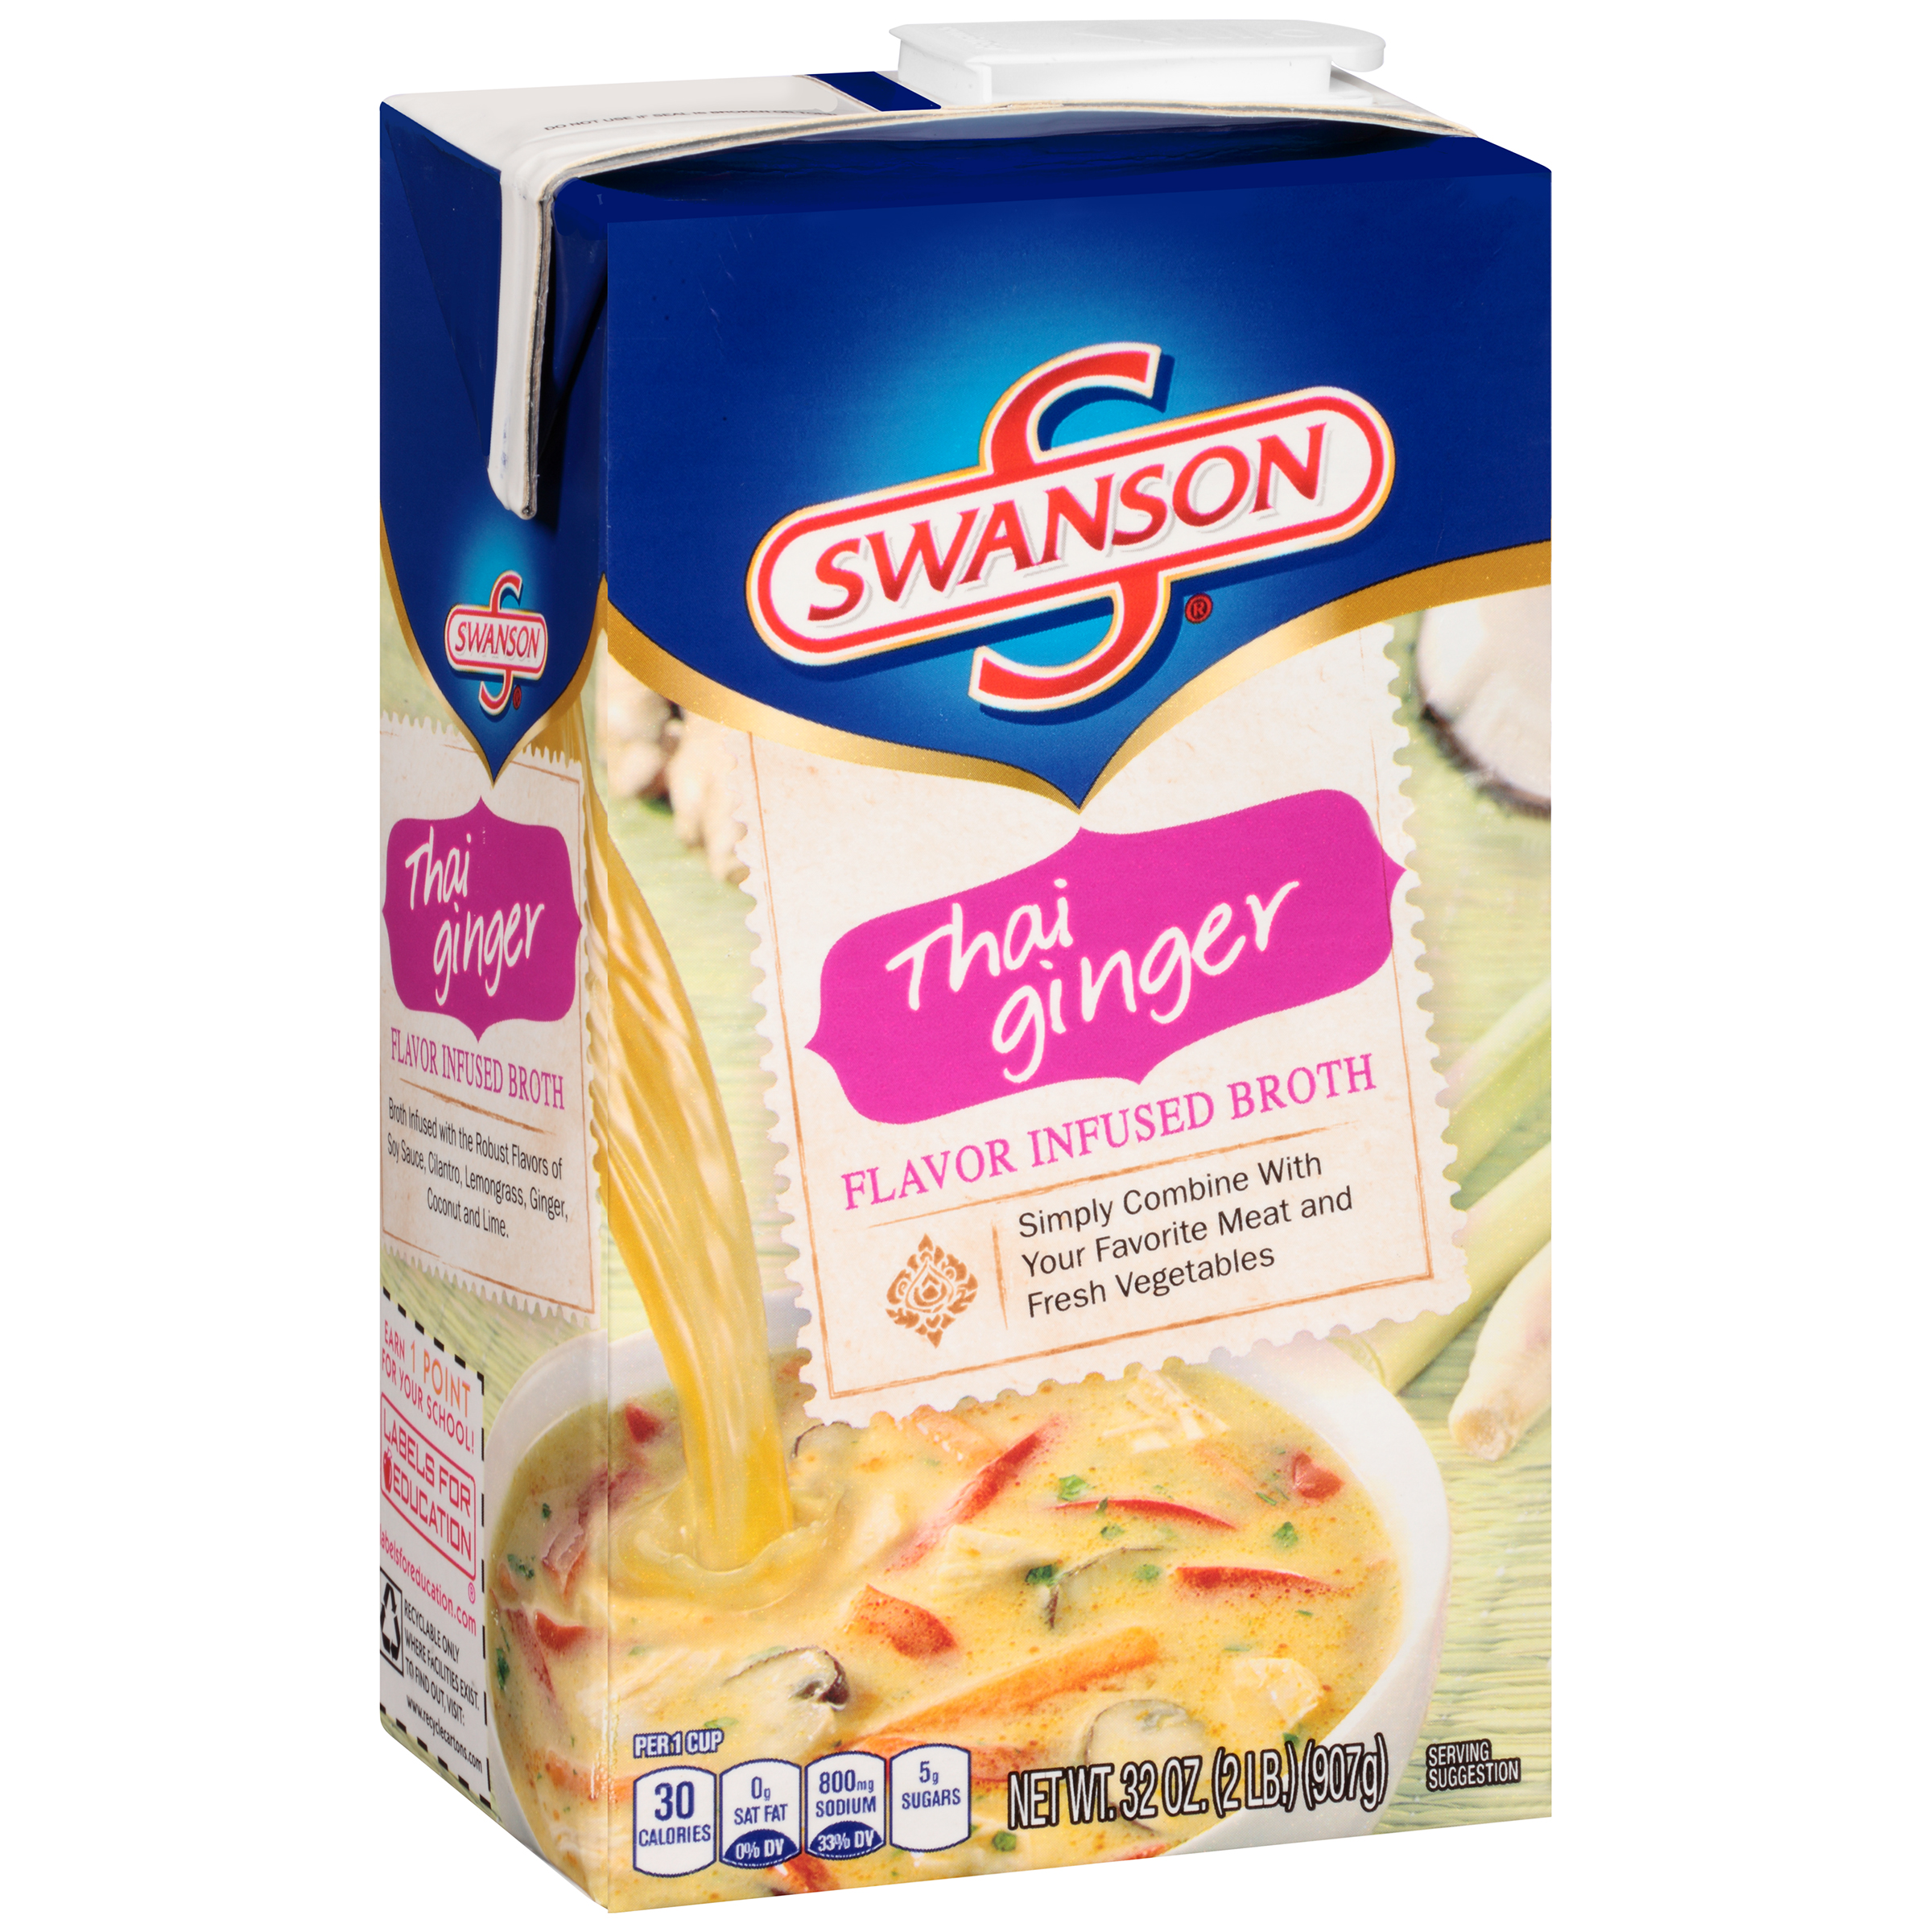 Swanson Thai Ginger Flavor Infused Broth 32oz